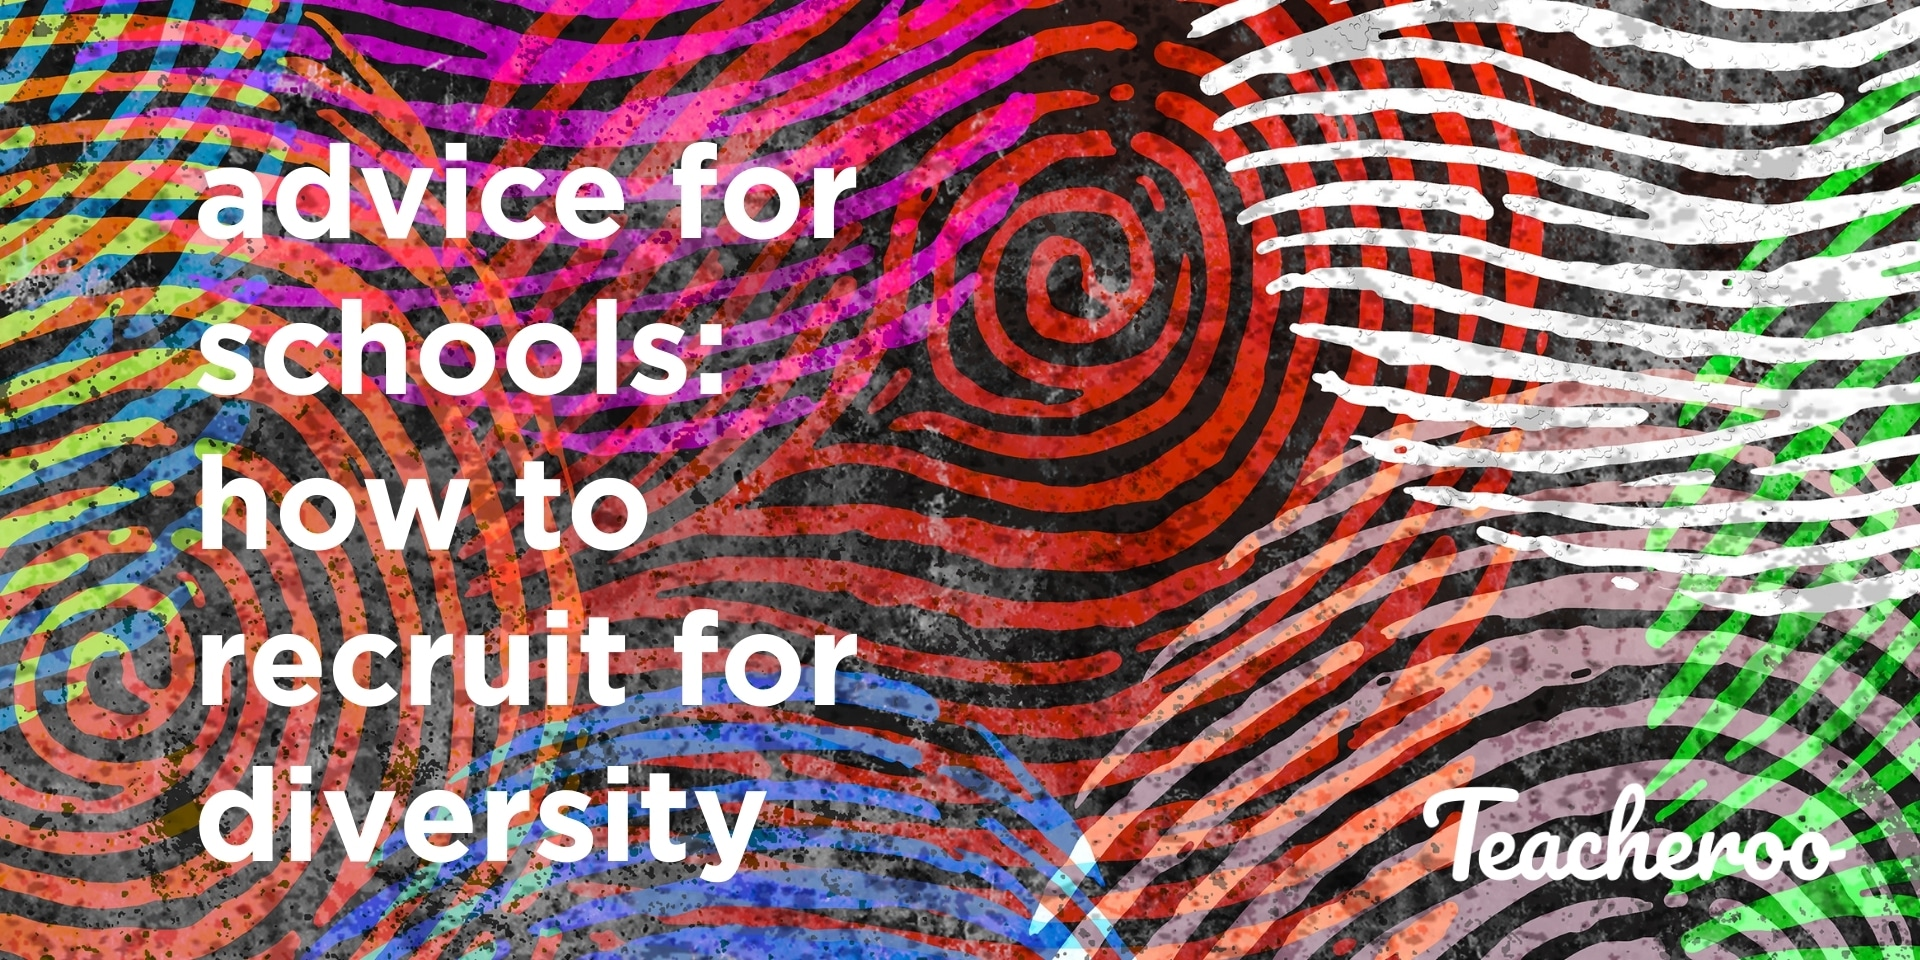 Advice for schools: how to recruit for diversity